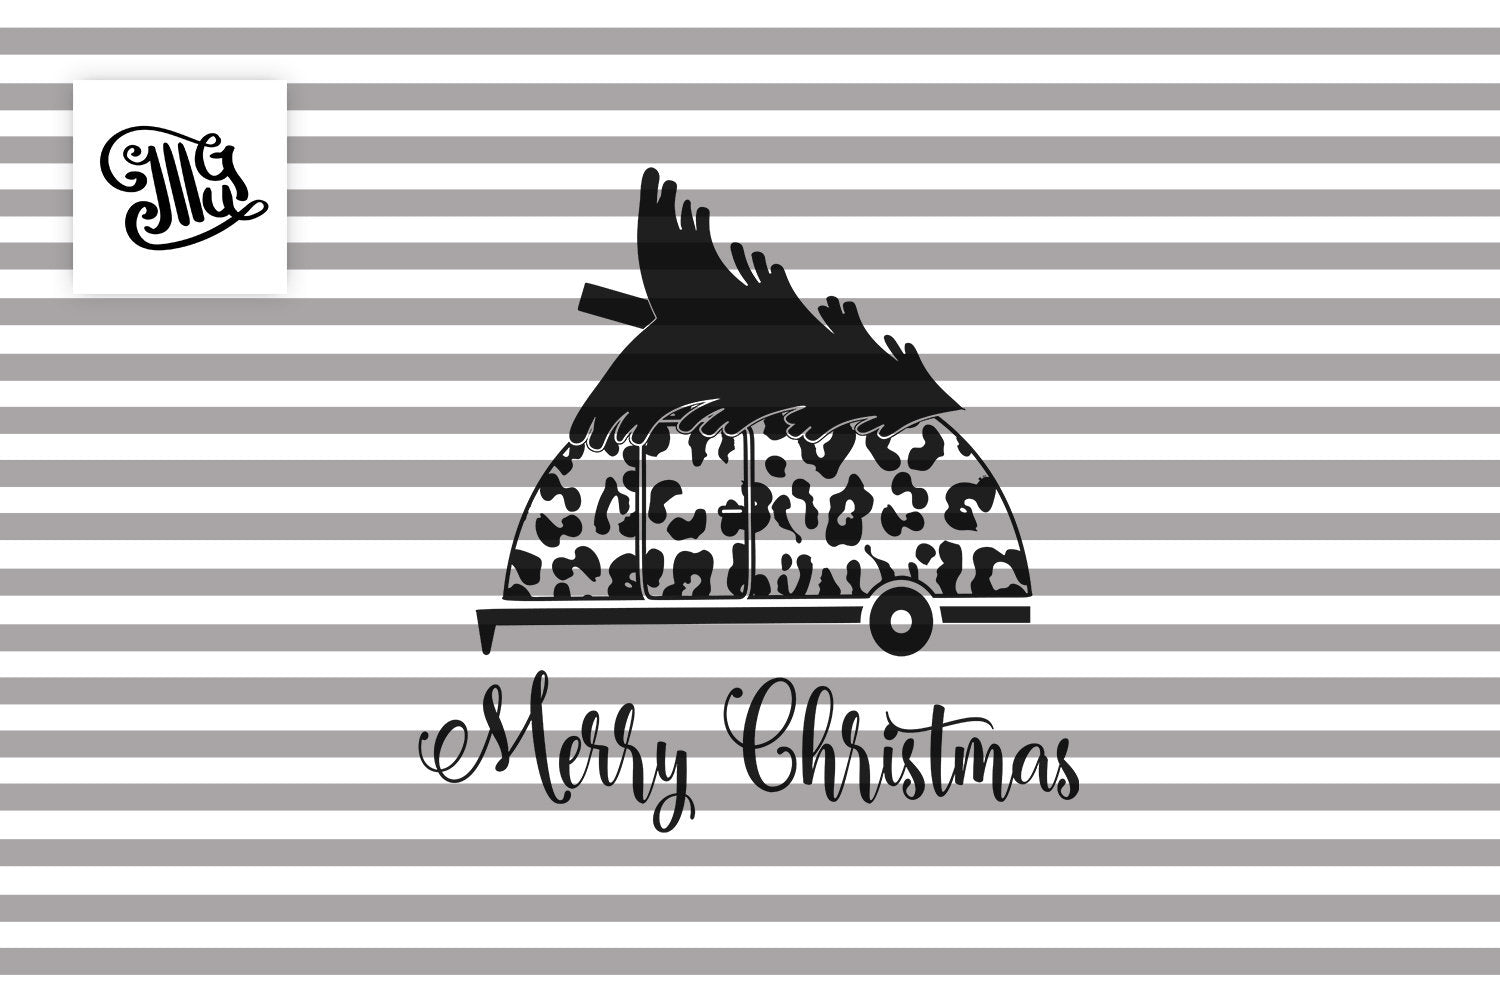 Merry Christmas Camper Svg with Leopard Print-by Illustrator Guru